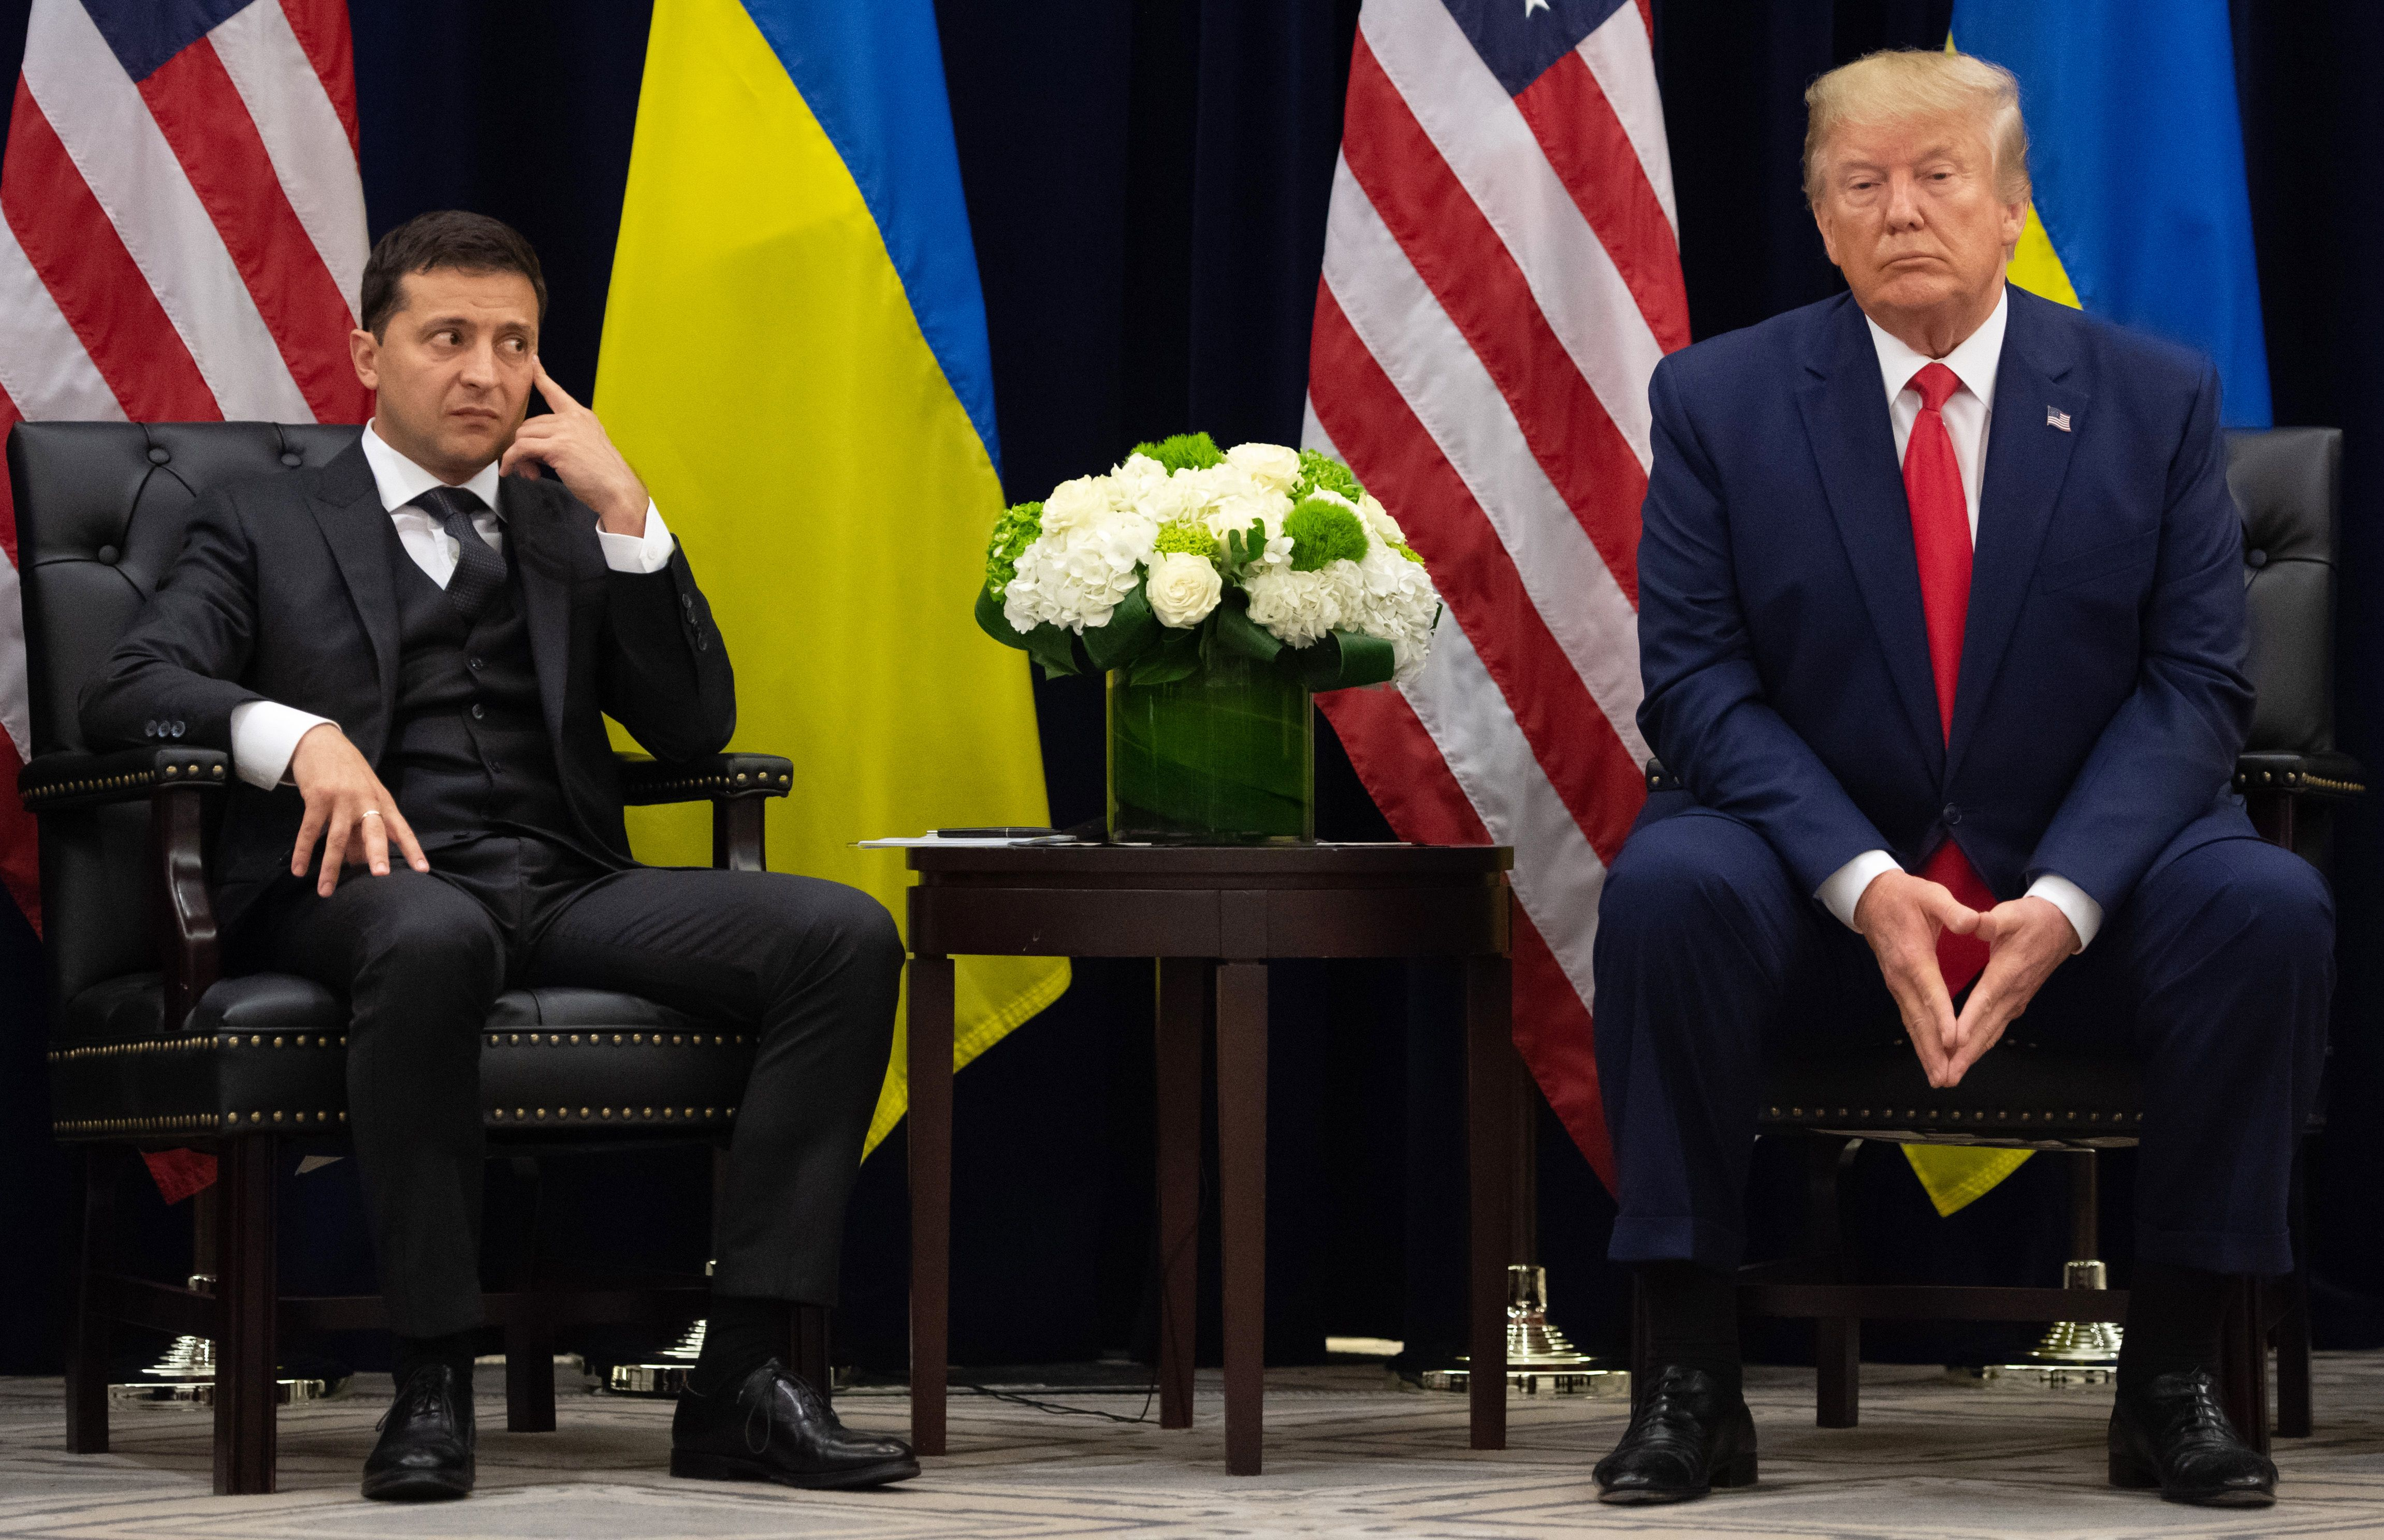 TOPSHOT - US President Donald Trump and Ukrainian President Volodymyr Zelensky looks on during a meeting in New York on September 25, 2019, on the sidelines of the United Nations General Assembly. (Photo by SAUL LOEB / AFP) (Photo by SAUL LOEB/AFP via Getty Images)